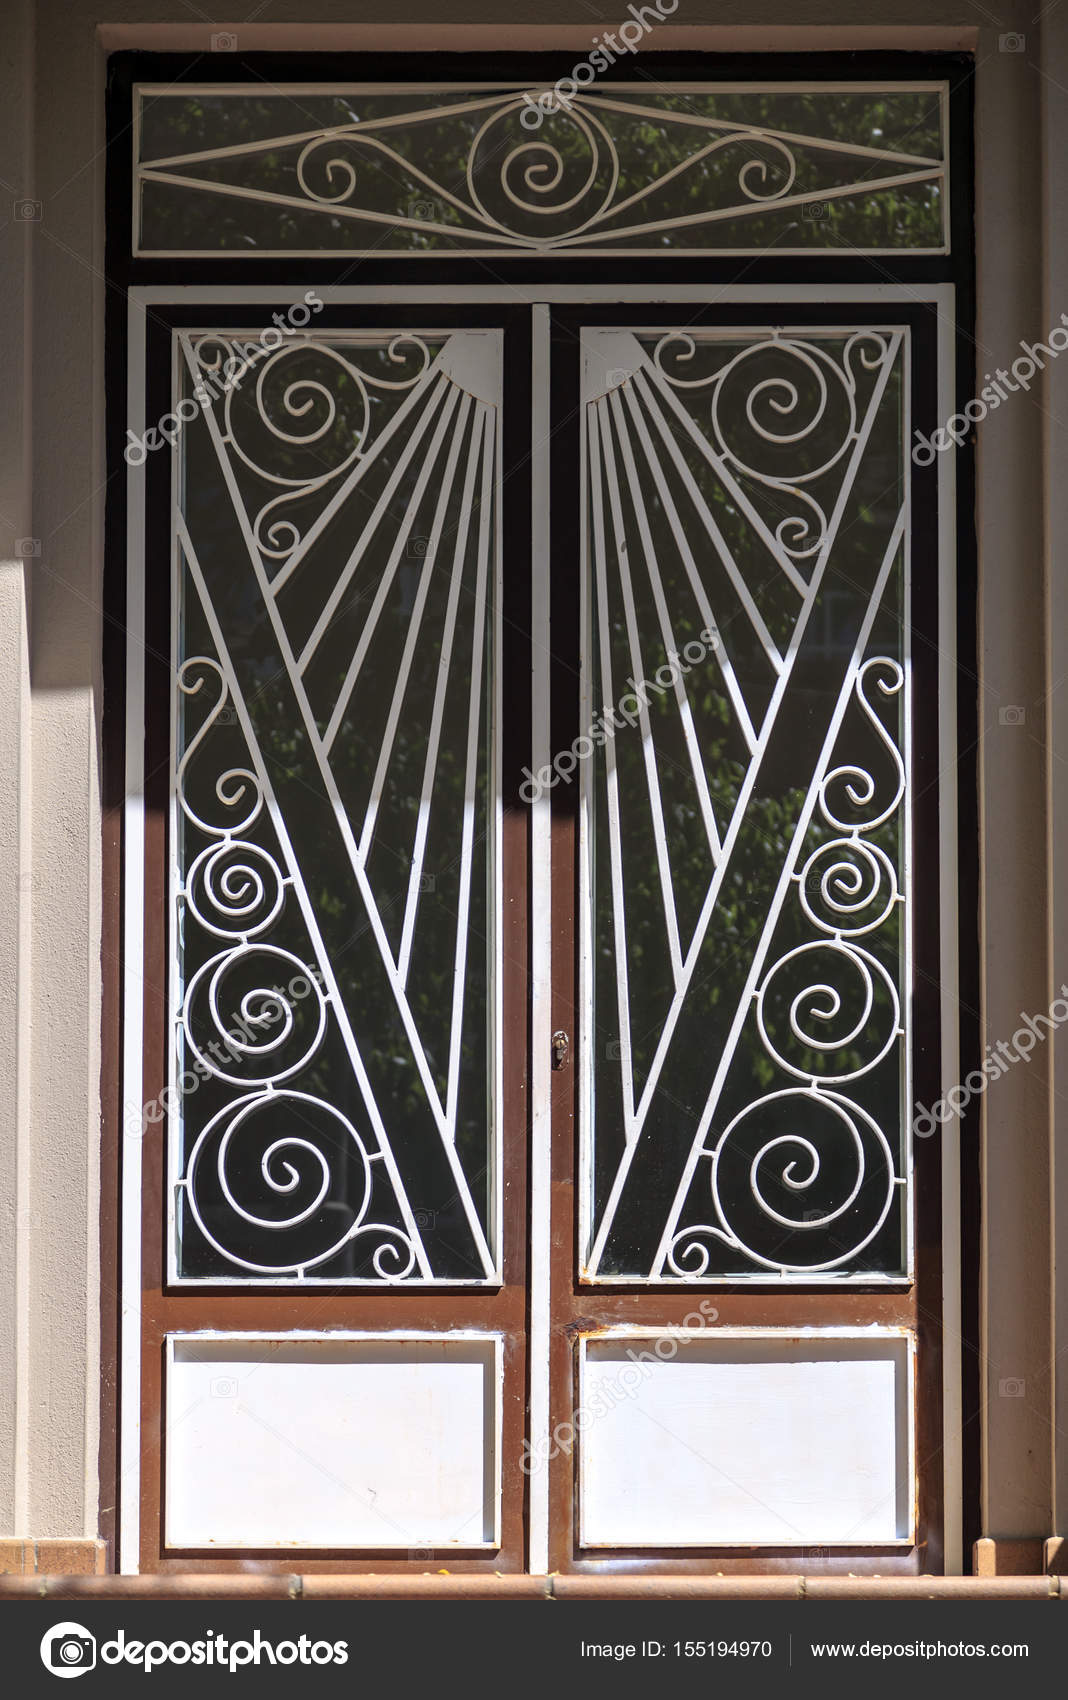 Beautiful metal ornate art deco door architectural detail \u2014 Photo by EnginKorkmaz & Metal ornate art deco door \u2014 Stock Photo © EnginKorkmaz #155194970